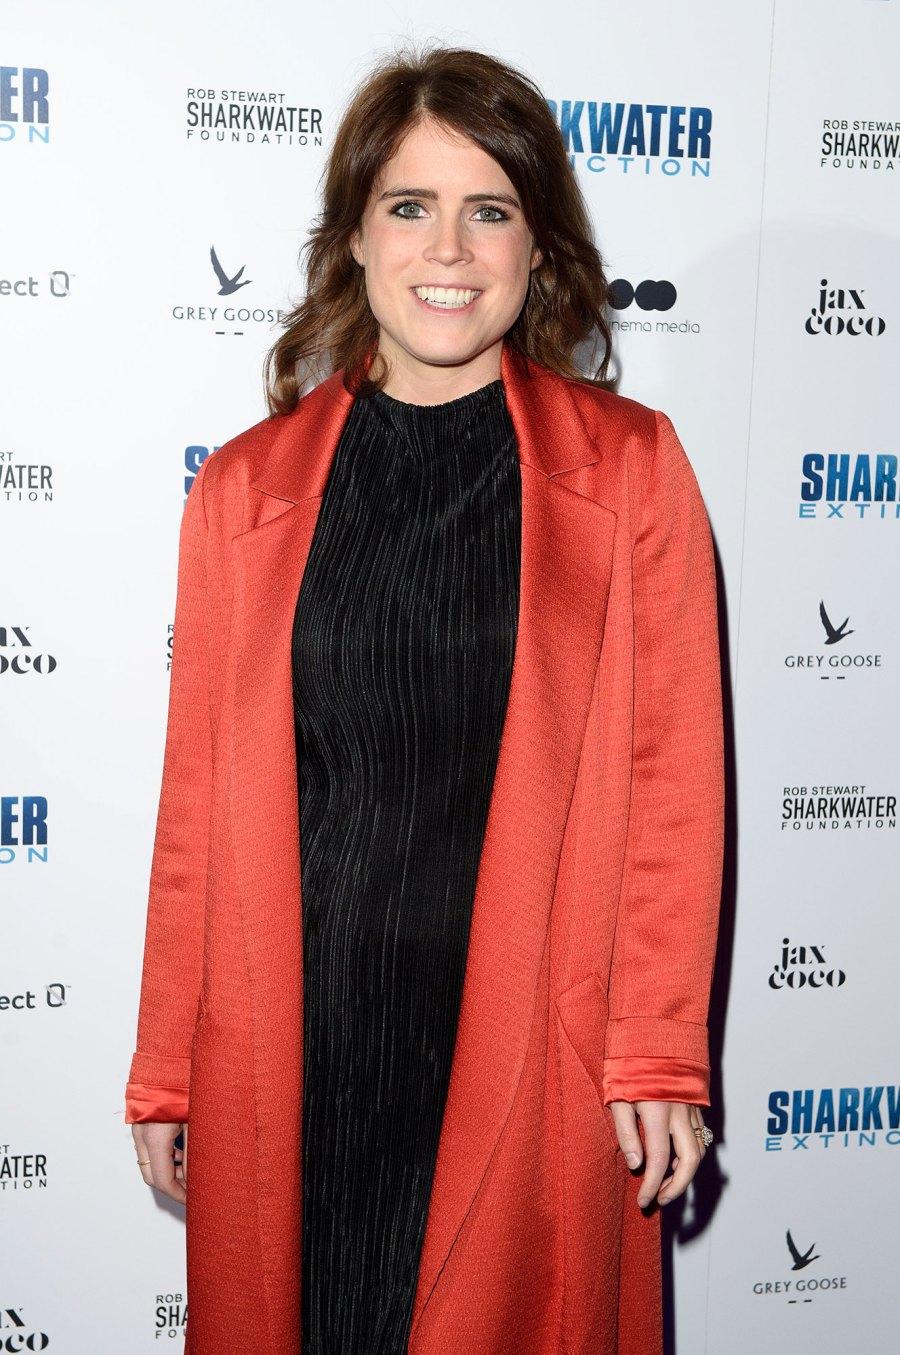 Princess Eugenie Where Do Harry and Meghan Stand With the Rest of the Royal Family